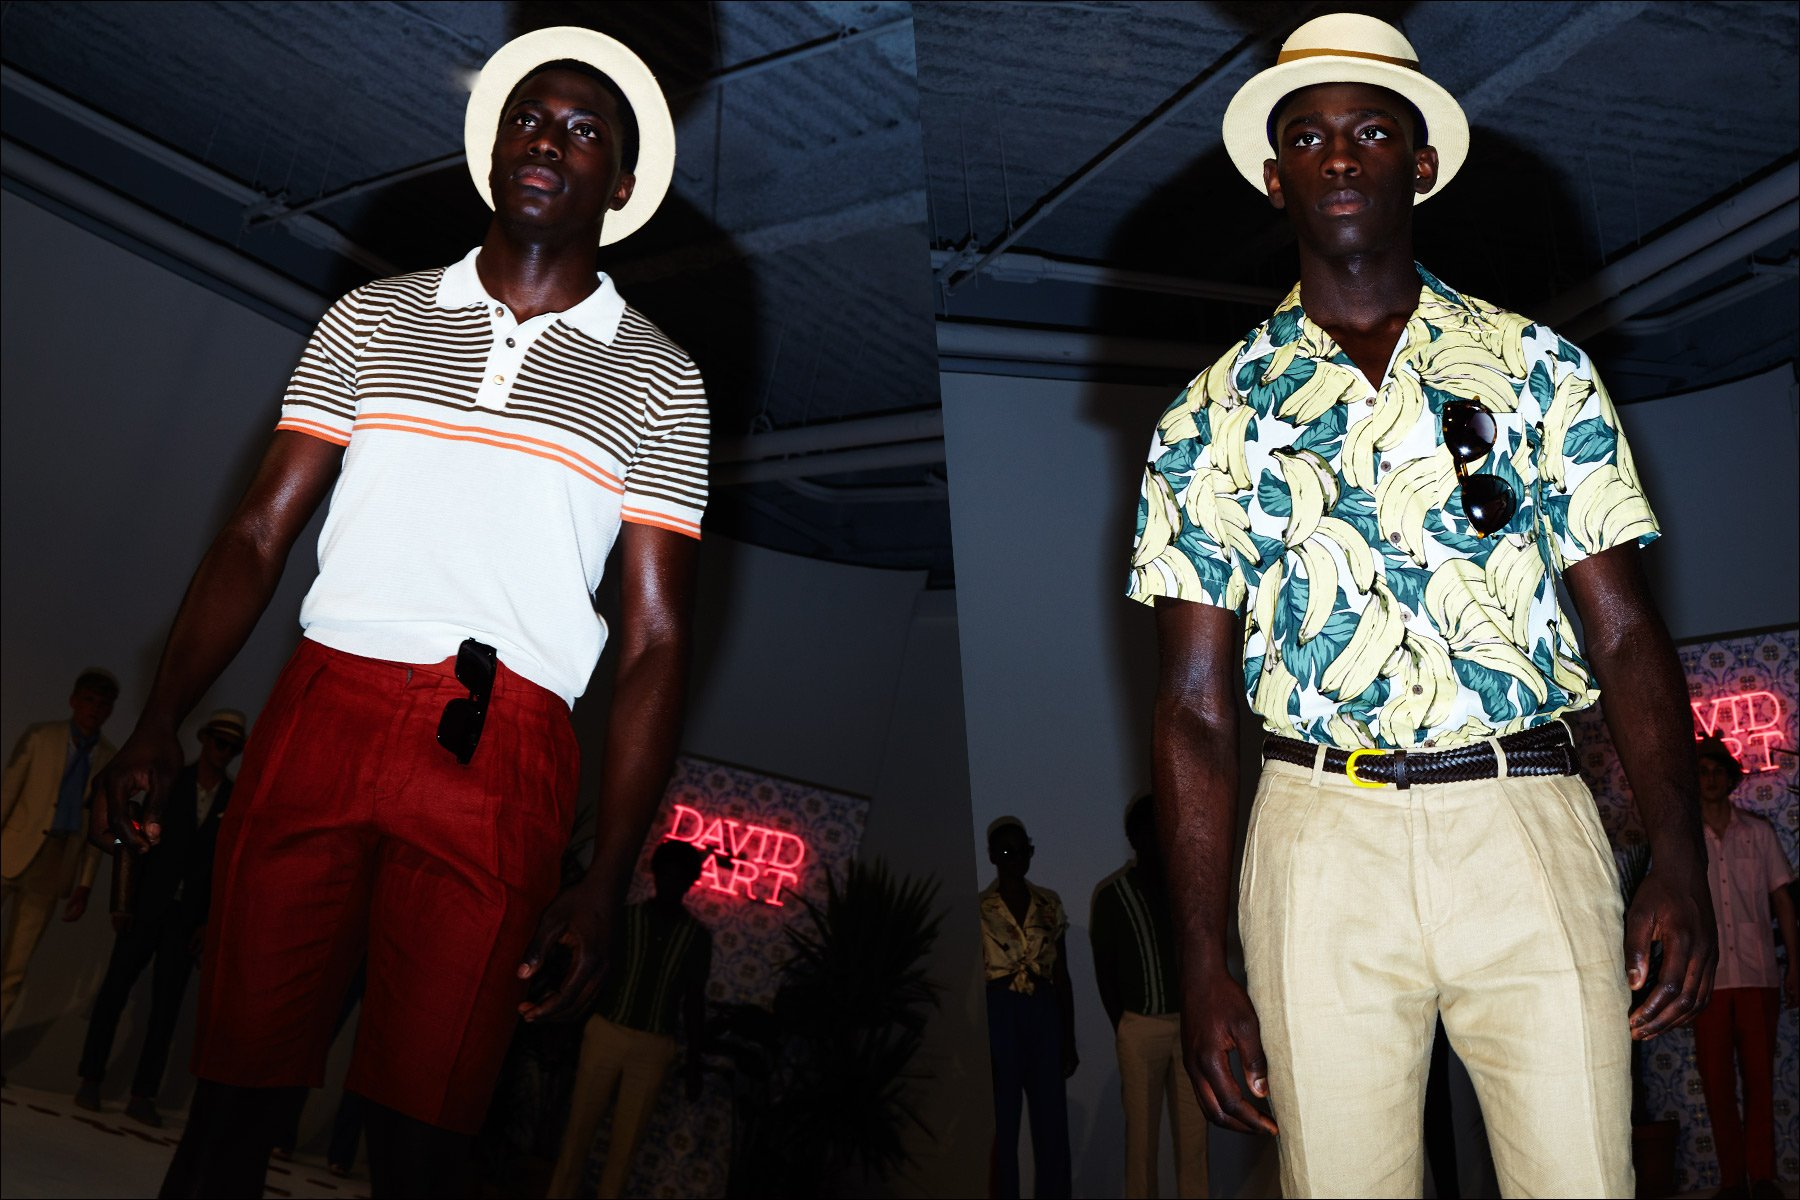 Spring 2018 Cuban inspired menswear on the runway for David Hart. Photographed by Alexander Thompson for Ponyboy magazine New York.